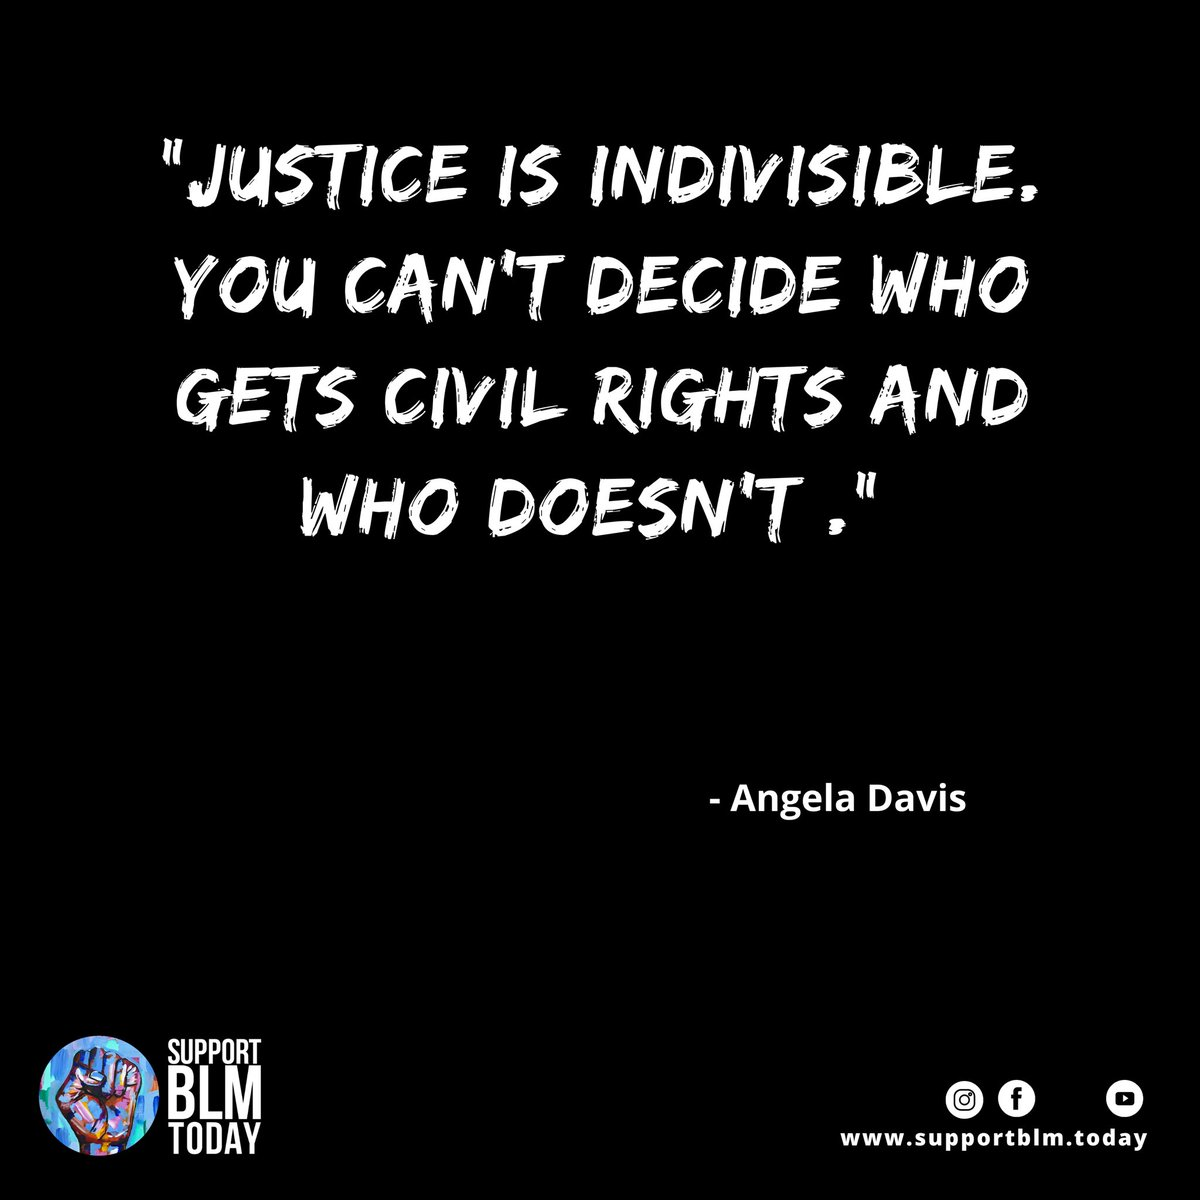 Justice is indivisible. You can't decide who gets civil rights and who doesn't    #blacklivesmatter #blmquotes #blm #blm2021 #equality #racism #solidarity #blacklives #mlk #blmmovement #nojusticenopeace #blacklivesmatterplaza #blmprotest #blmfist